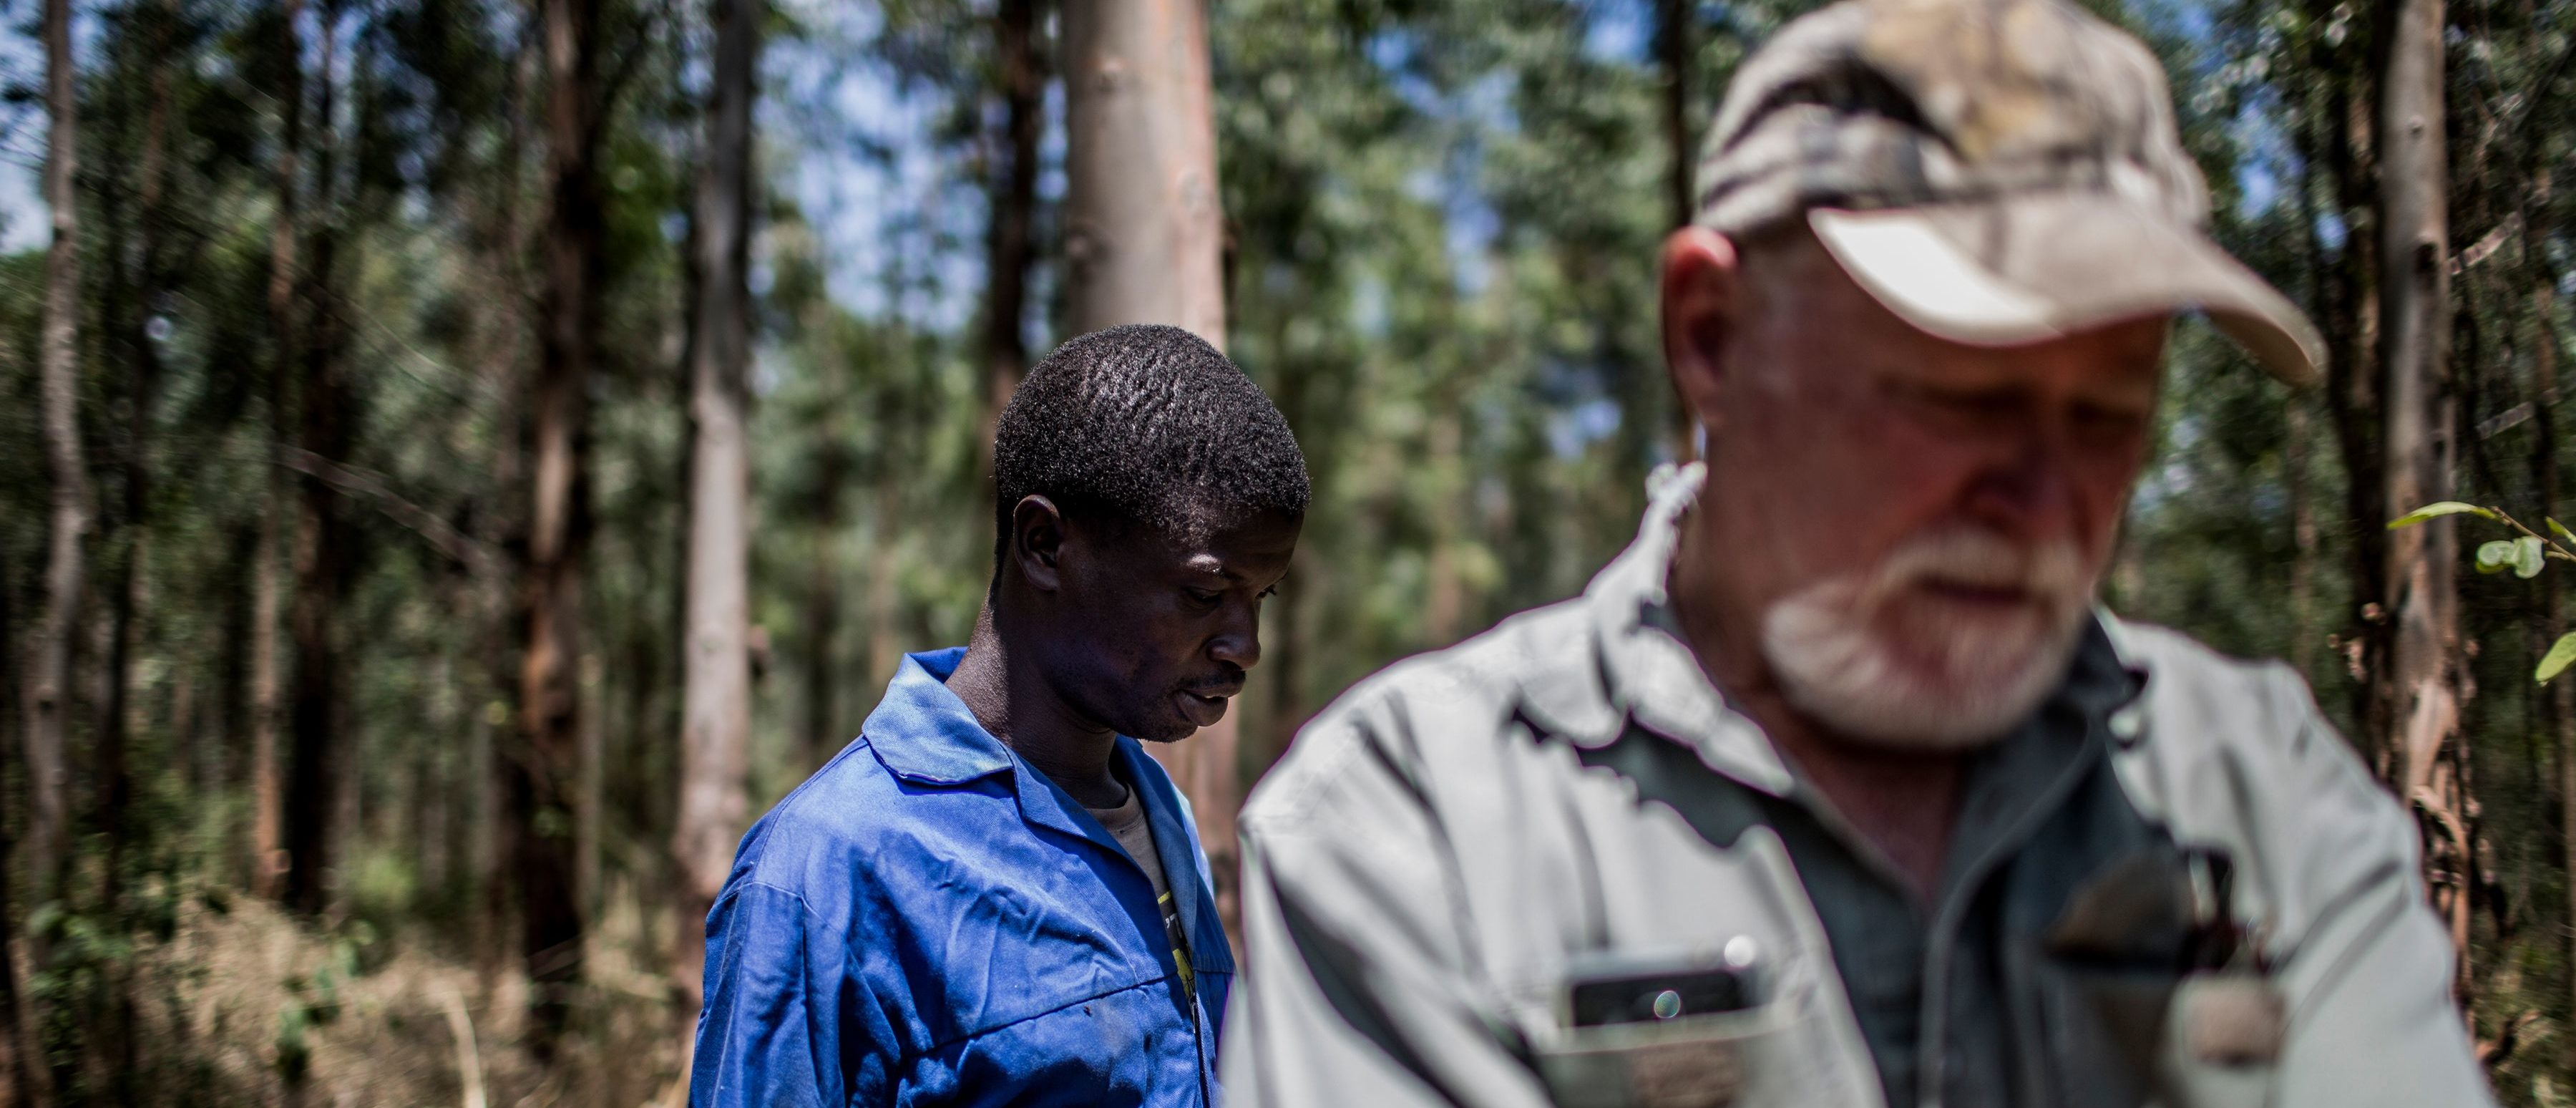 Farm worker Mogoala Justice Ratalele (L) stand near his boss farmer Hans Bergmann (R) after an incident in which he was held at gunpoint for the theft of the chainsaw that he was working with, on November 2, 2017, in Tzaneen, South Africa. A long campaign of violence against the country's farmers, who are largely white, has inflamed political and racial tensions nearly a quarter-of-a-century after the fall of apartheid. / AFP PHOTO / GULSHAN KHAN (Photo credit should read GULSHAN KHAN/AFP/Getty Images)